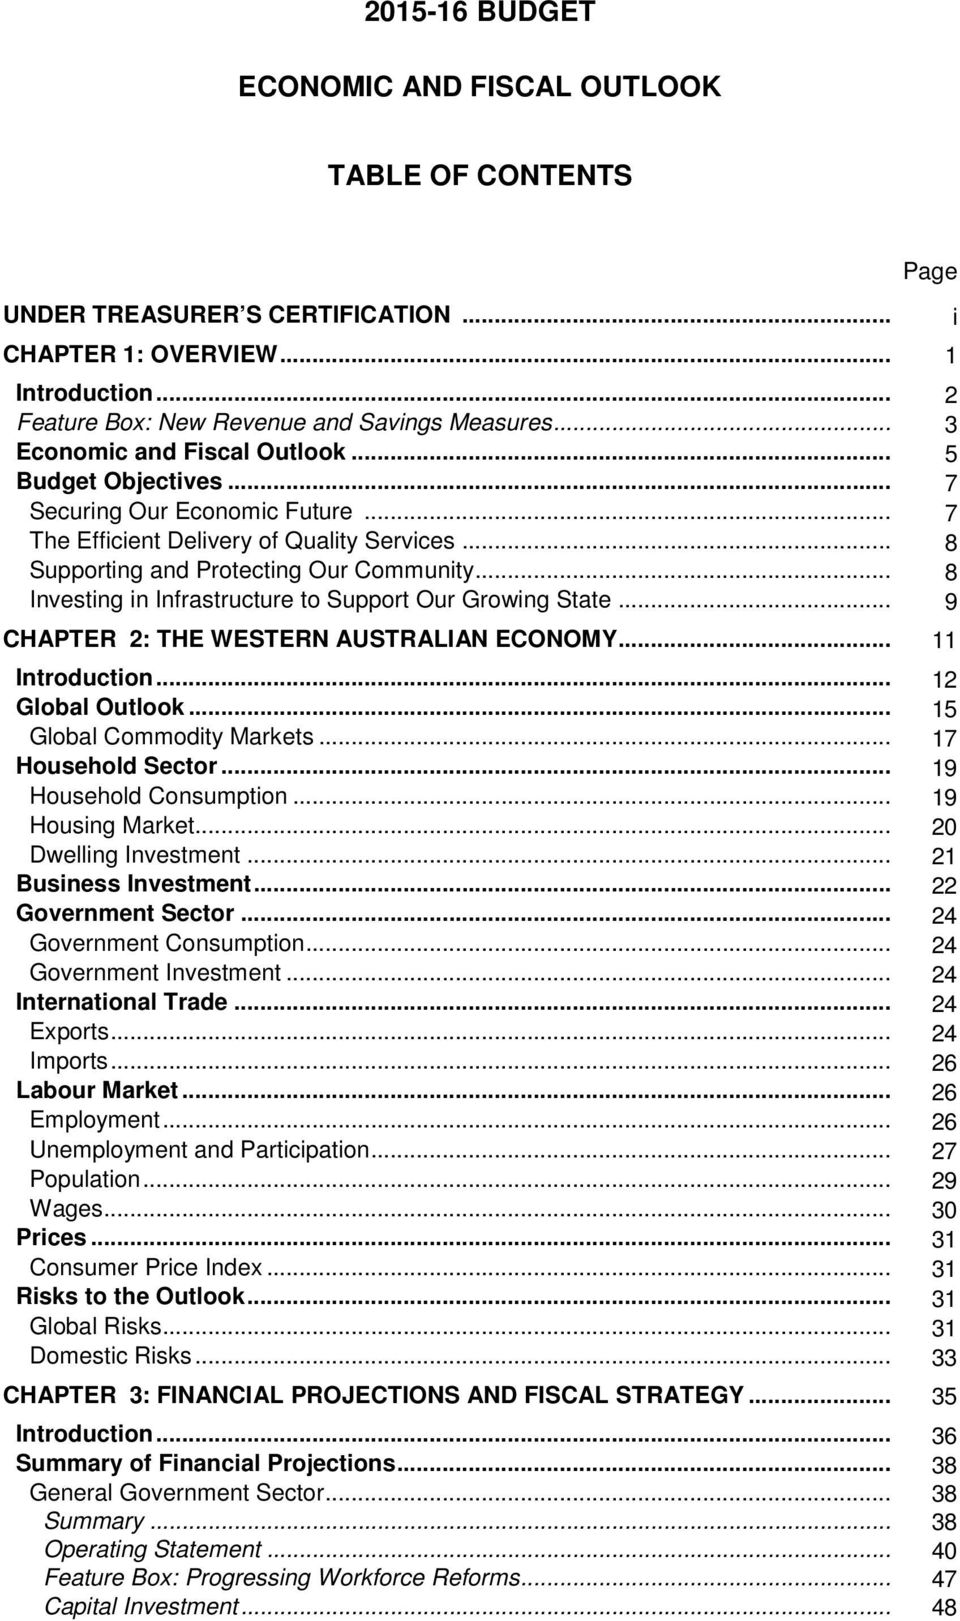 .. 8 Investing in Infrastructure to Support Our Growing State... 9 CHAPTER 2: THE WESTERN AUSTRALIAN ECONOMY... 11 Introduction... 12 Global Outlook... 15 Global Commodity Markets.